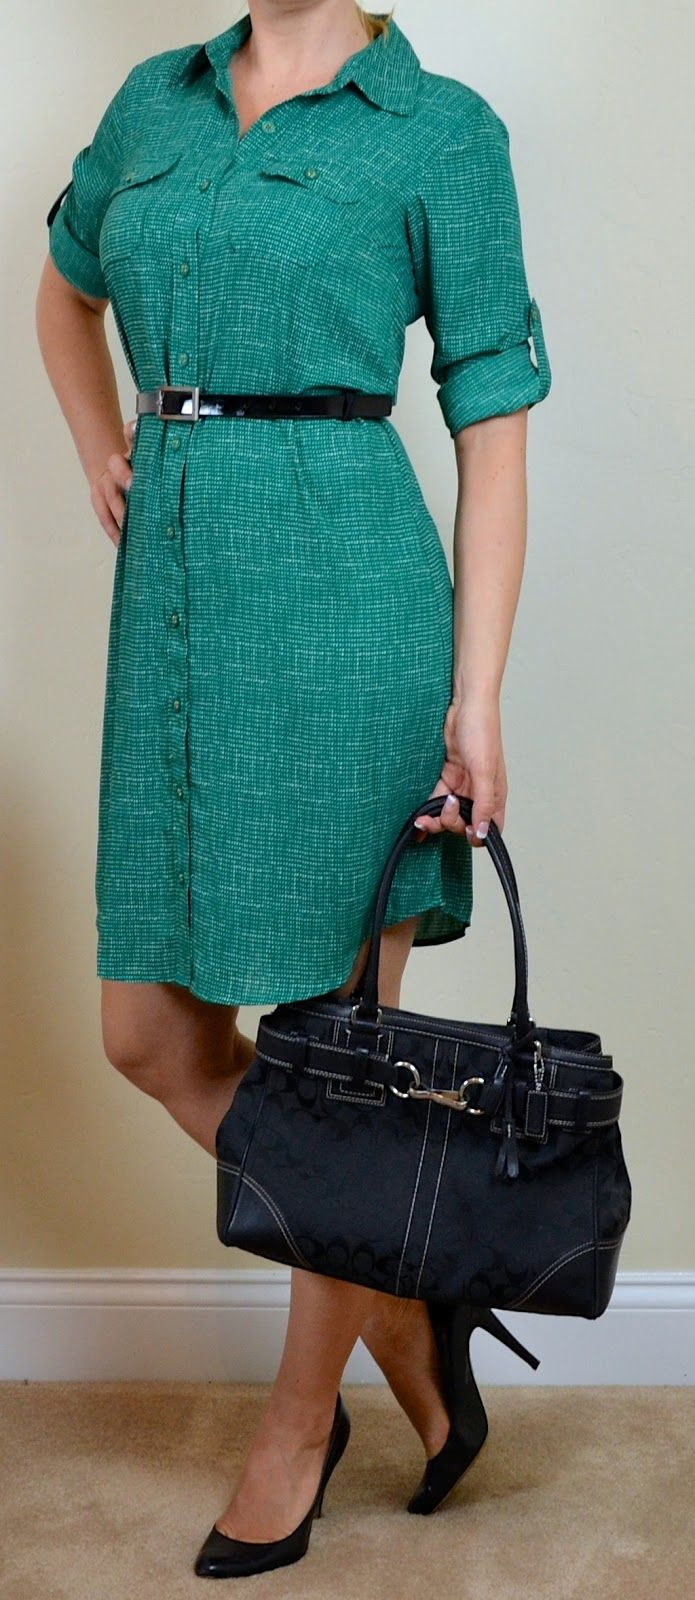 outfit post: green shirt dress, black pumps | Outfit Posts